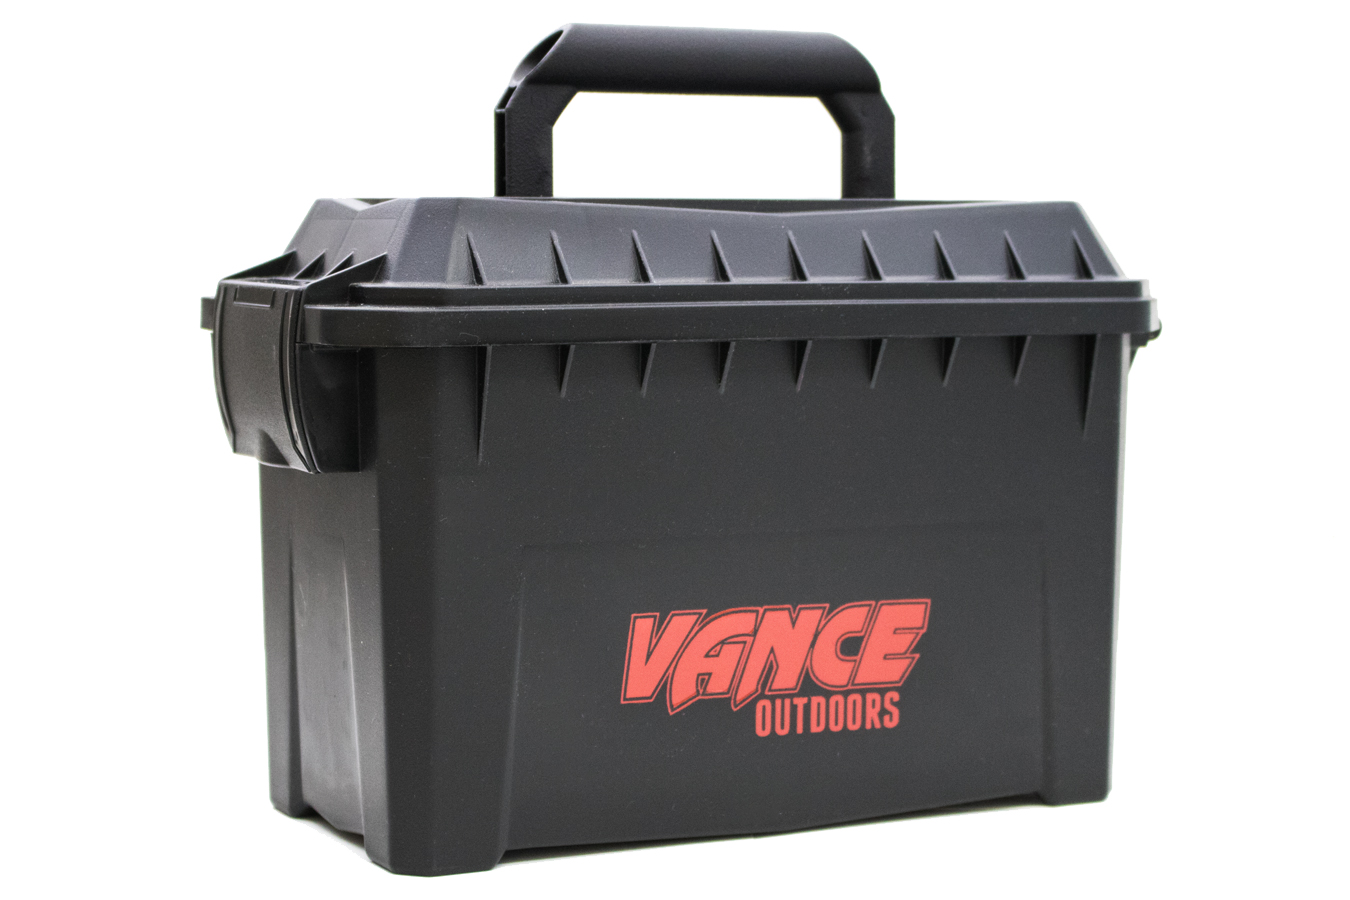 50MM VANCE LOGO AMMO CAN